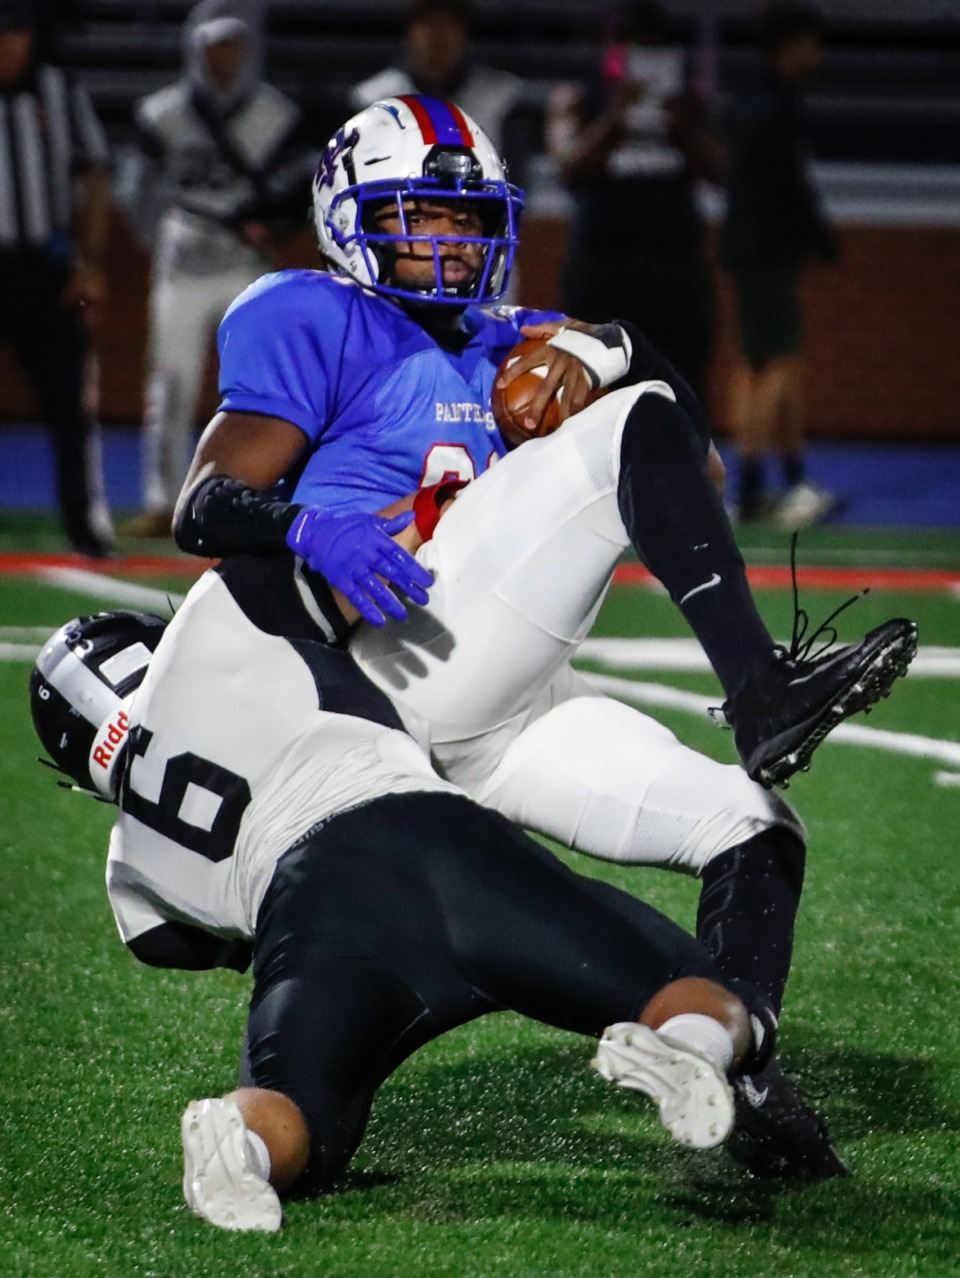 <strong>Houston defender Brady Weatherly (bottom) tackles Bartlett running back Robert Giaimo (top) in the backfield Friday.</strong> (Mark Weber/The Daily Memphian)